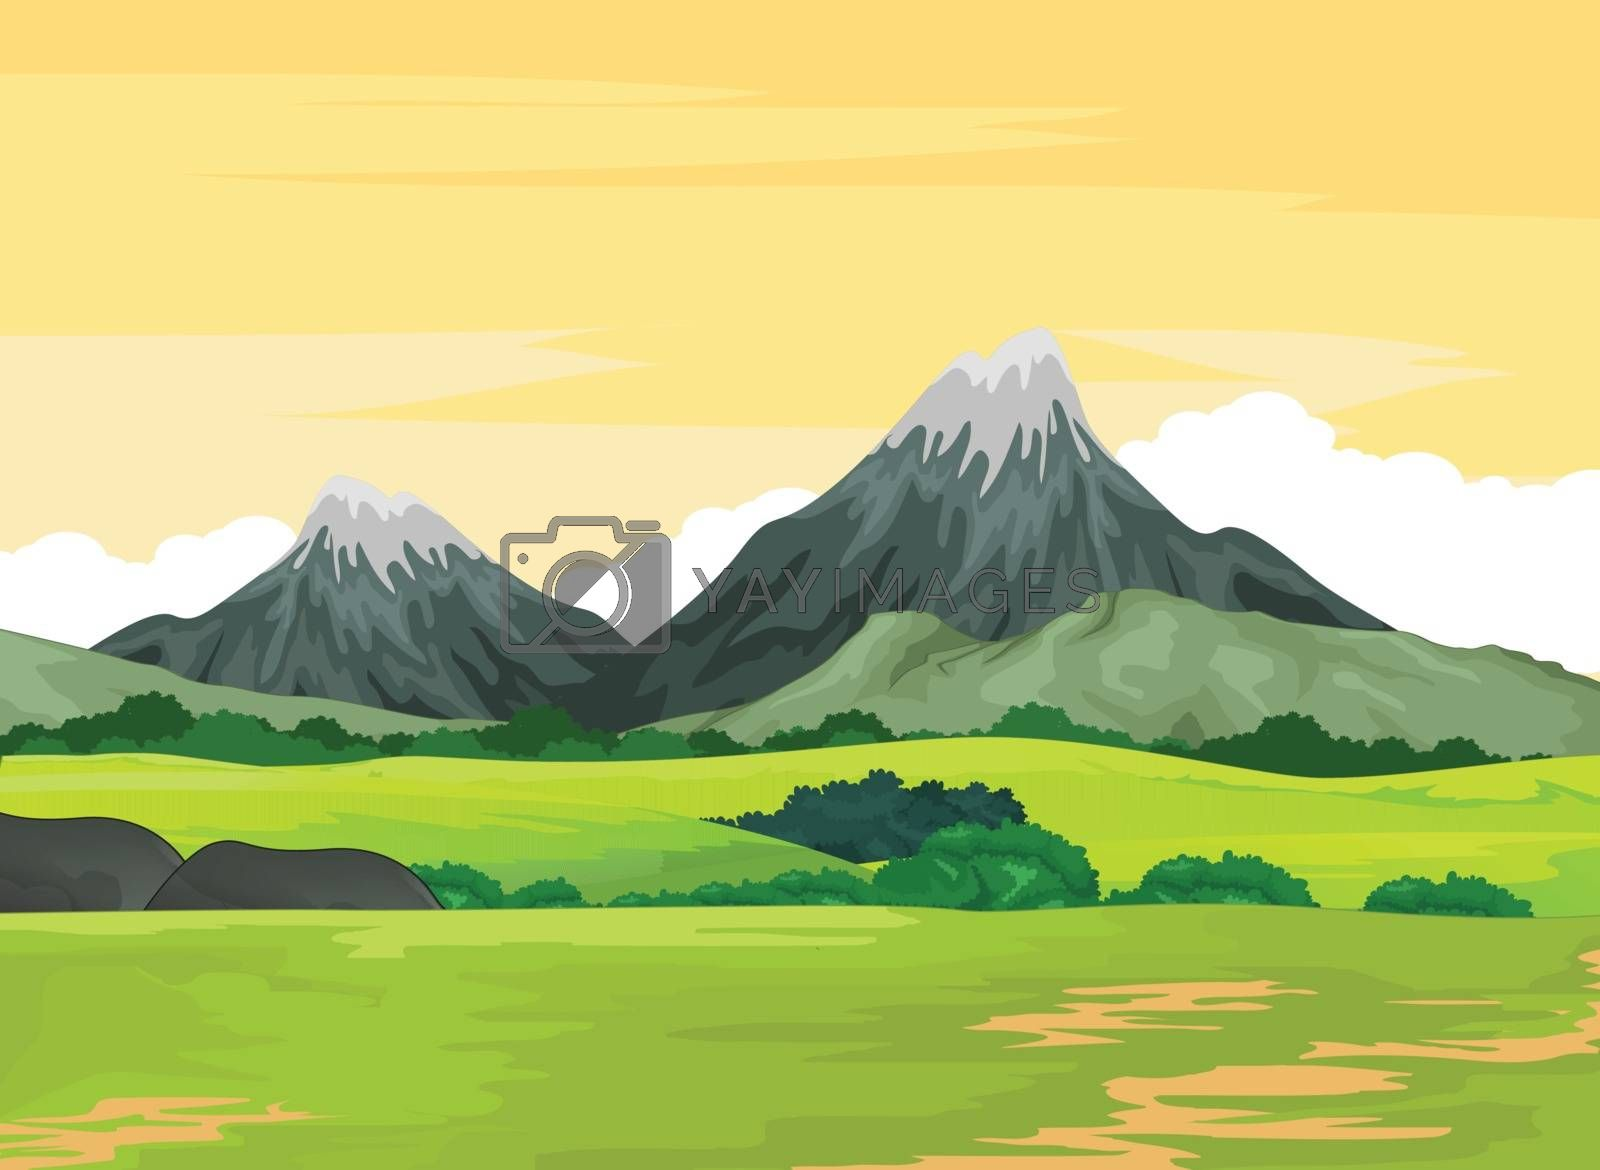 Royalty free image of Landscape Mountain View Background by sujono